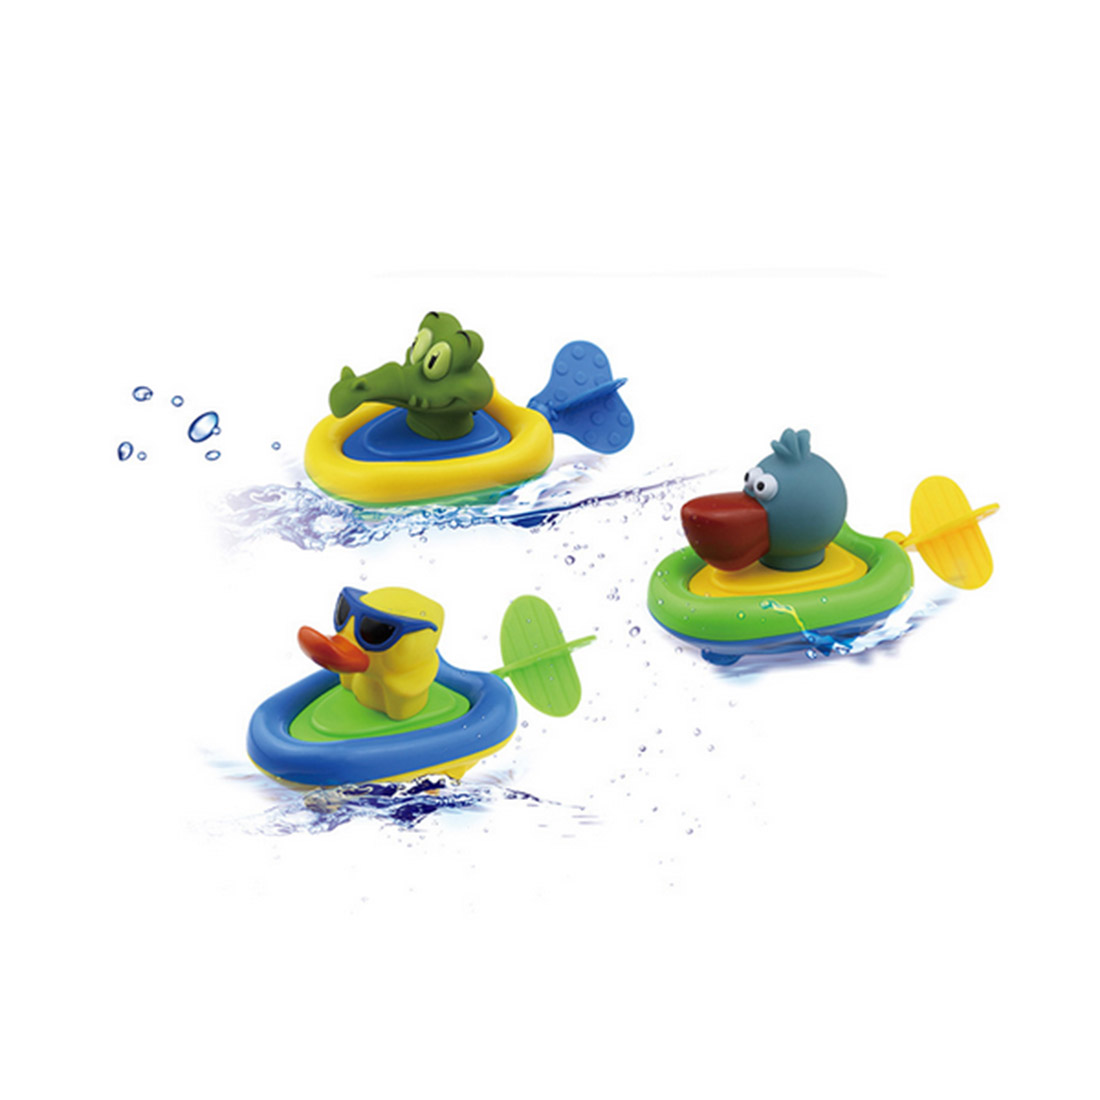 Cute Animal Boat Baby Bath Toy Bracing Wire Clockwork Toy Floating Water Baby Bath Toys Classic Toys for Kids Baby